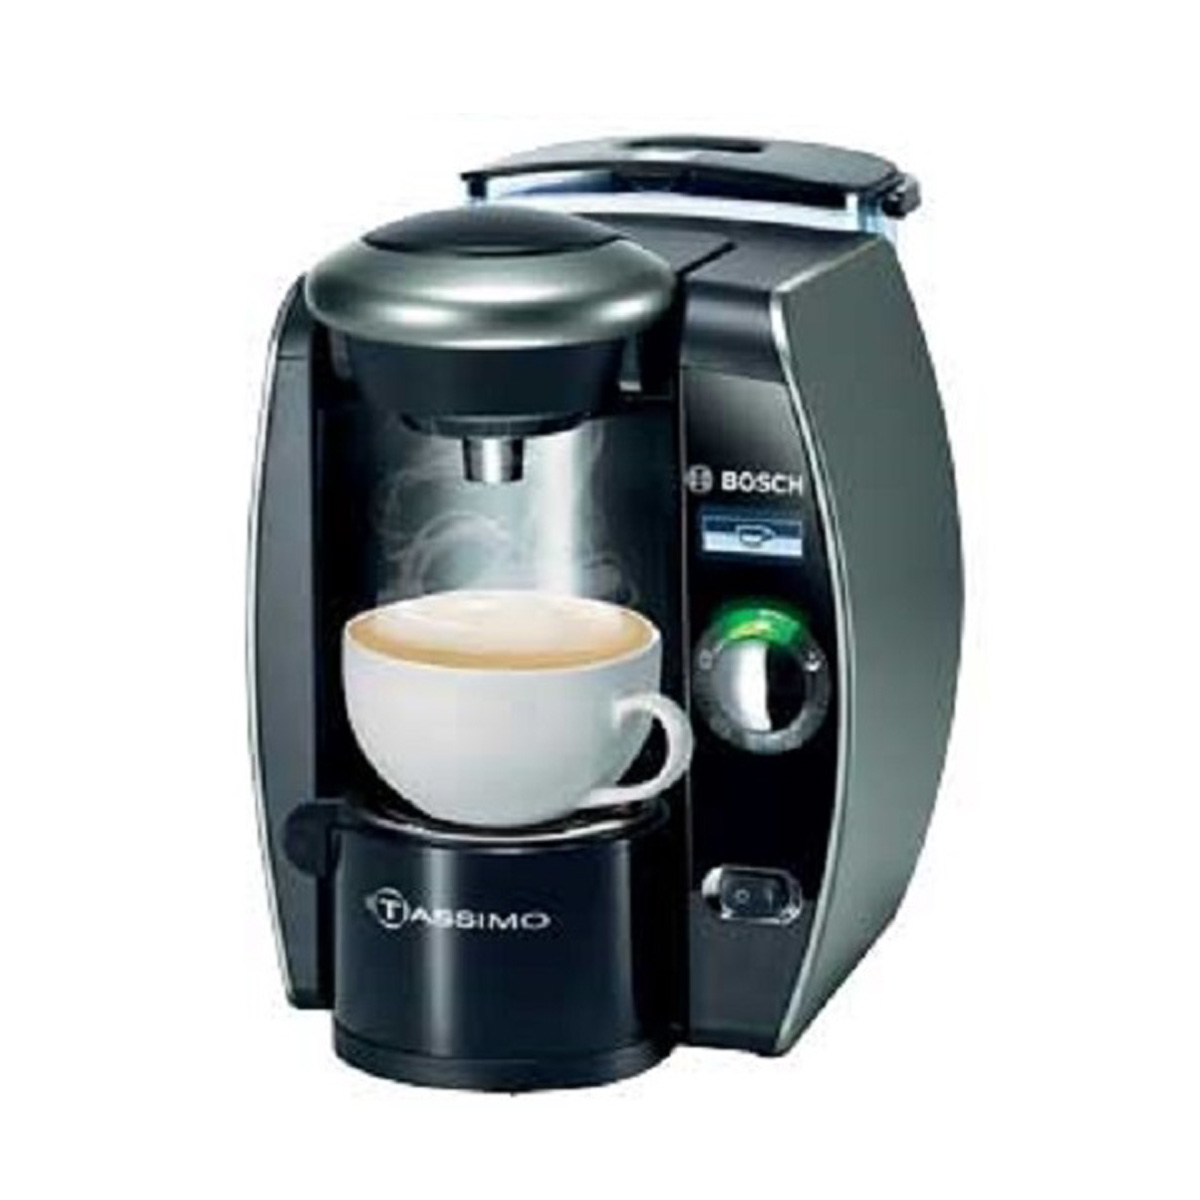 bosch tassimo t65 fidelia plus tas6515gb multi drink coffee machine with lcd display around. Black Bedroom Furniture Sets. Home Design Ideas